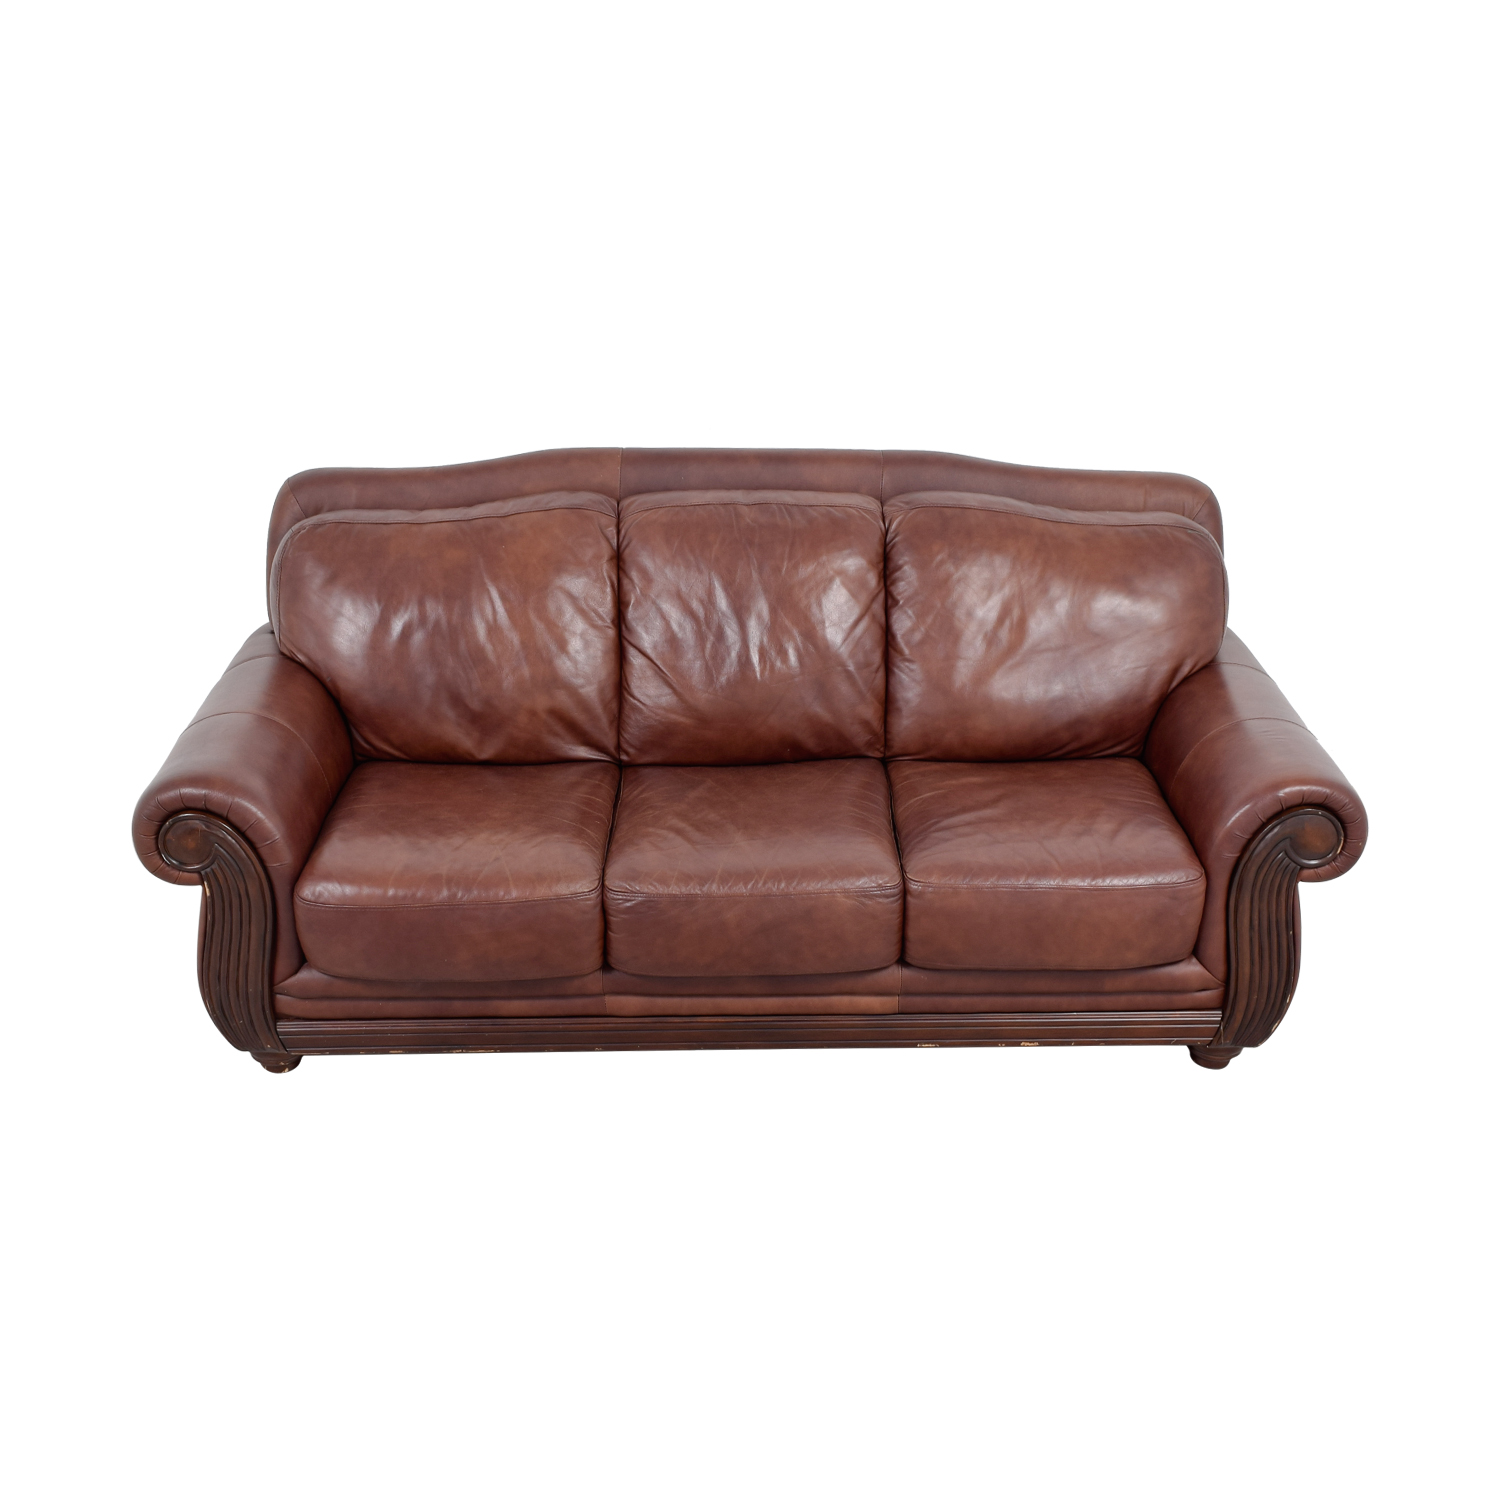 shop Rooms To Go Brown Three -Cushion Leather Couch Rooms To Go Classic Sofas